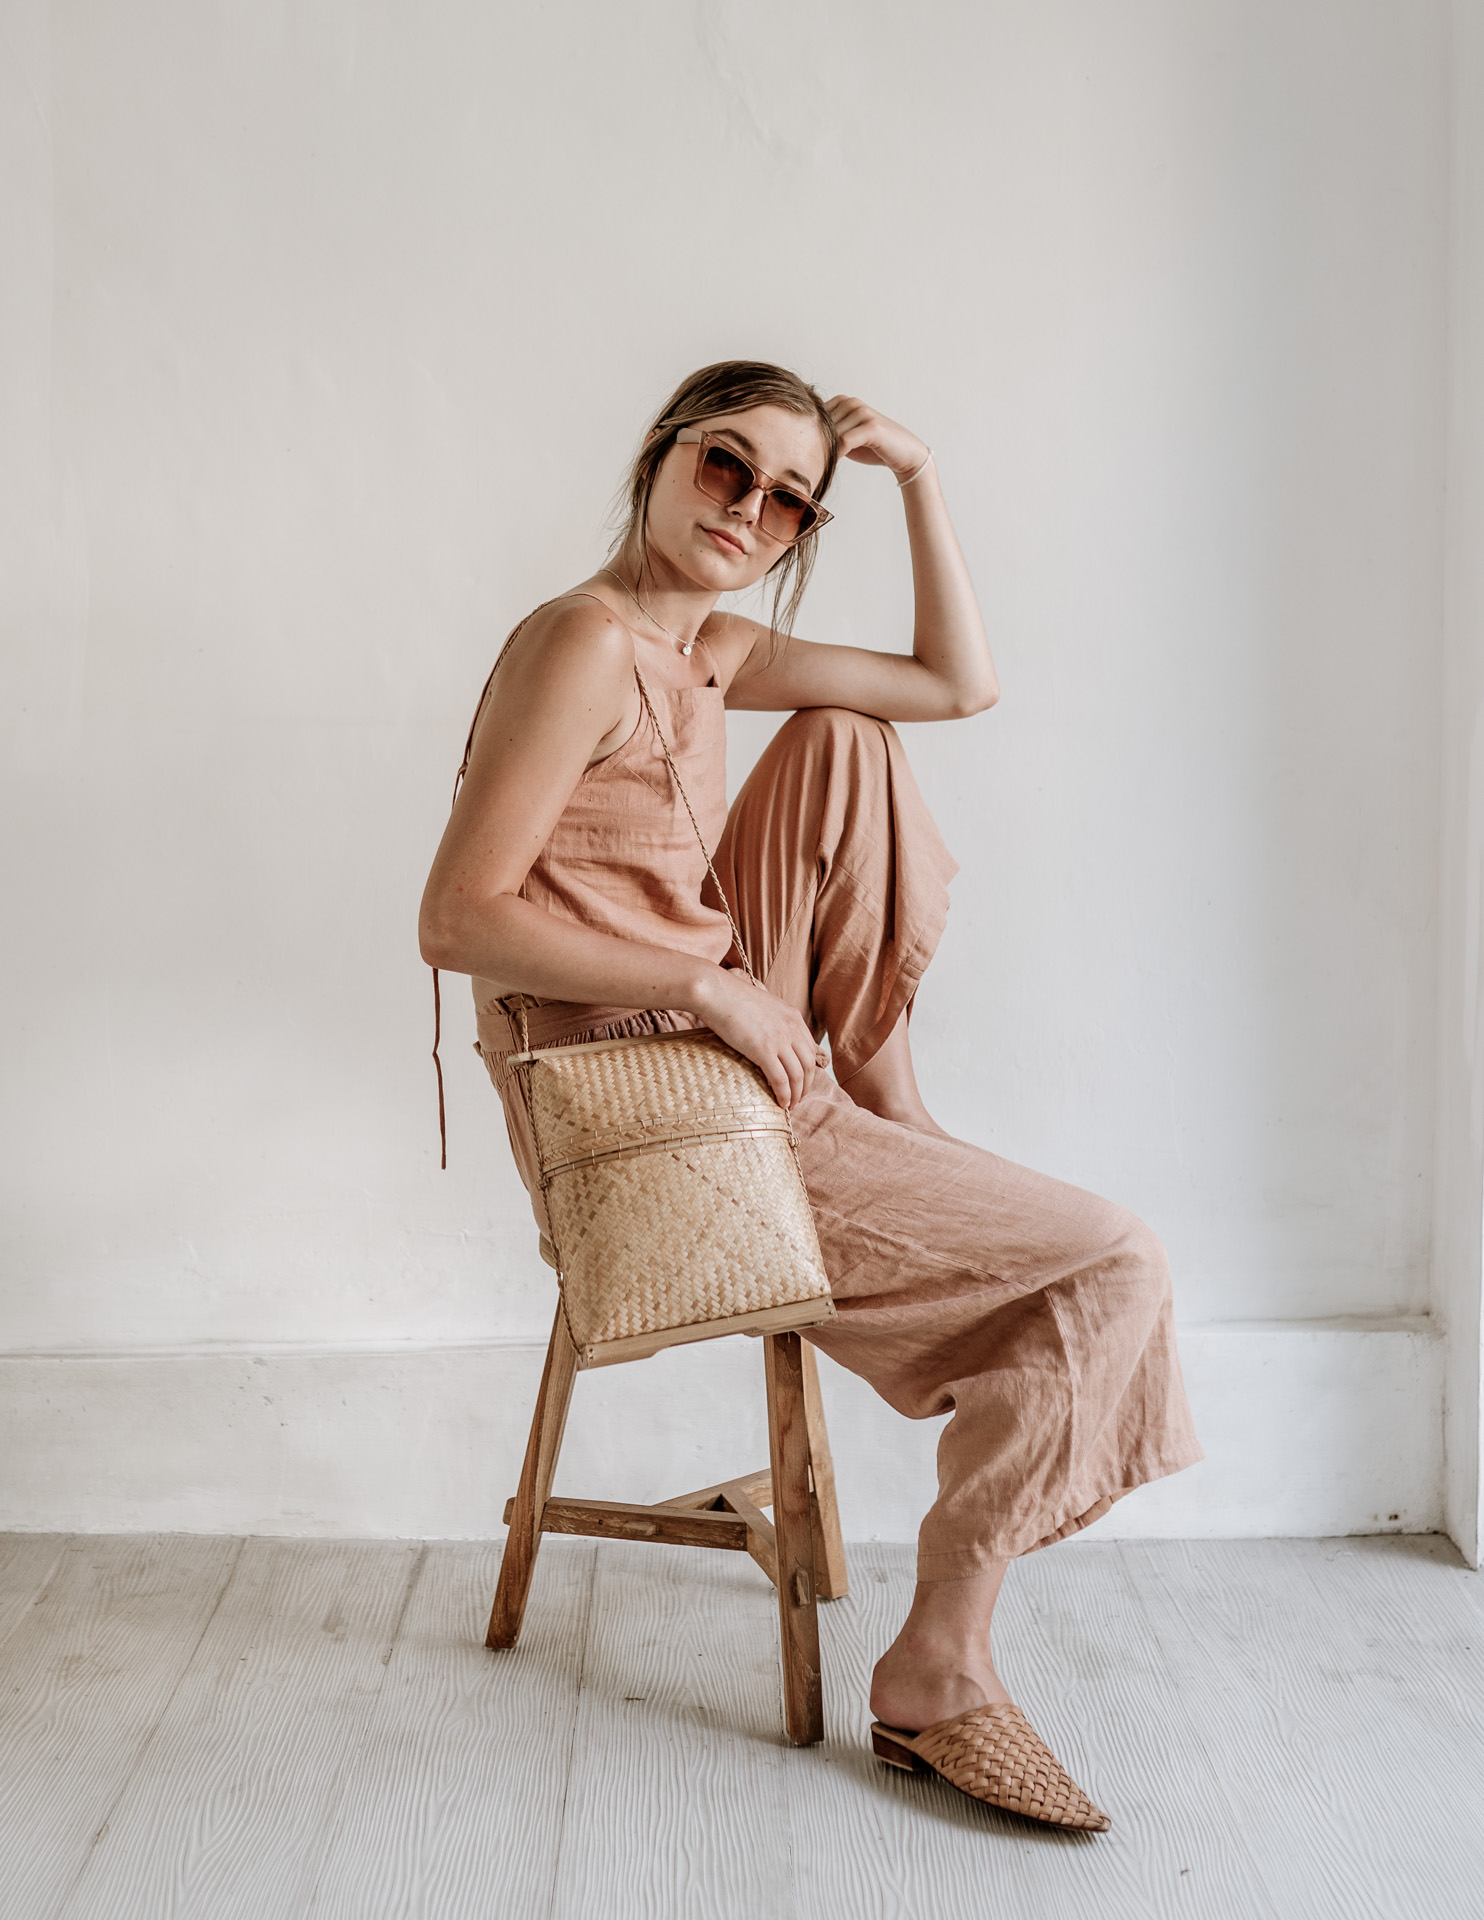 keira-mason-free-the-label-pants-apricot-set-sitting.jpg